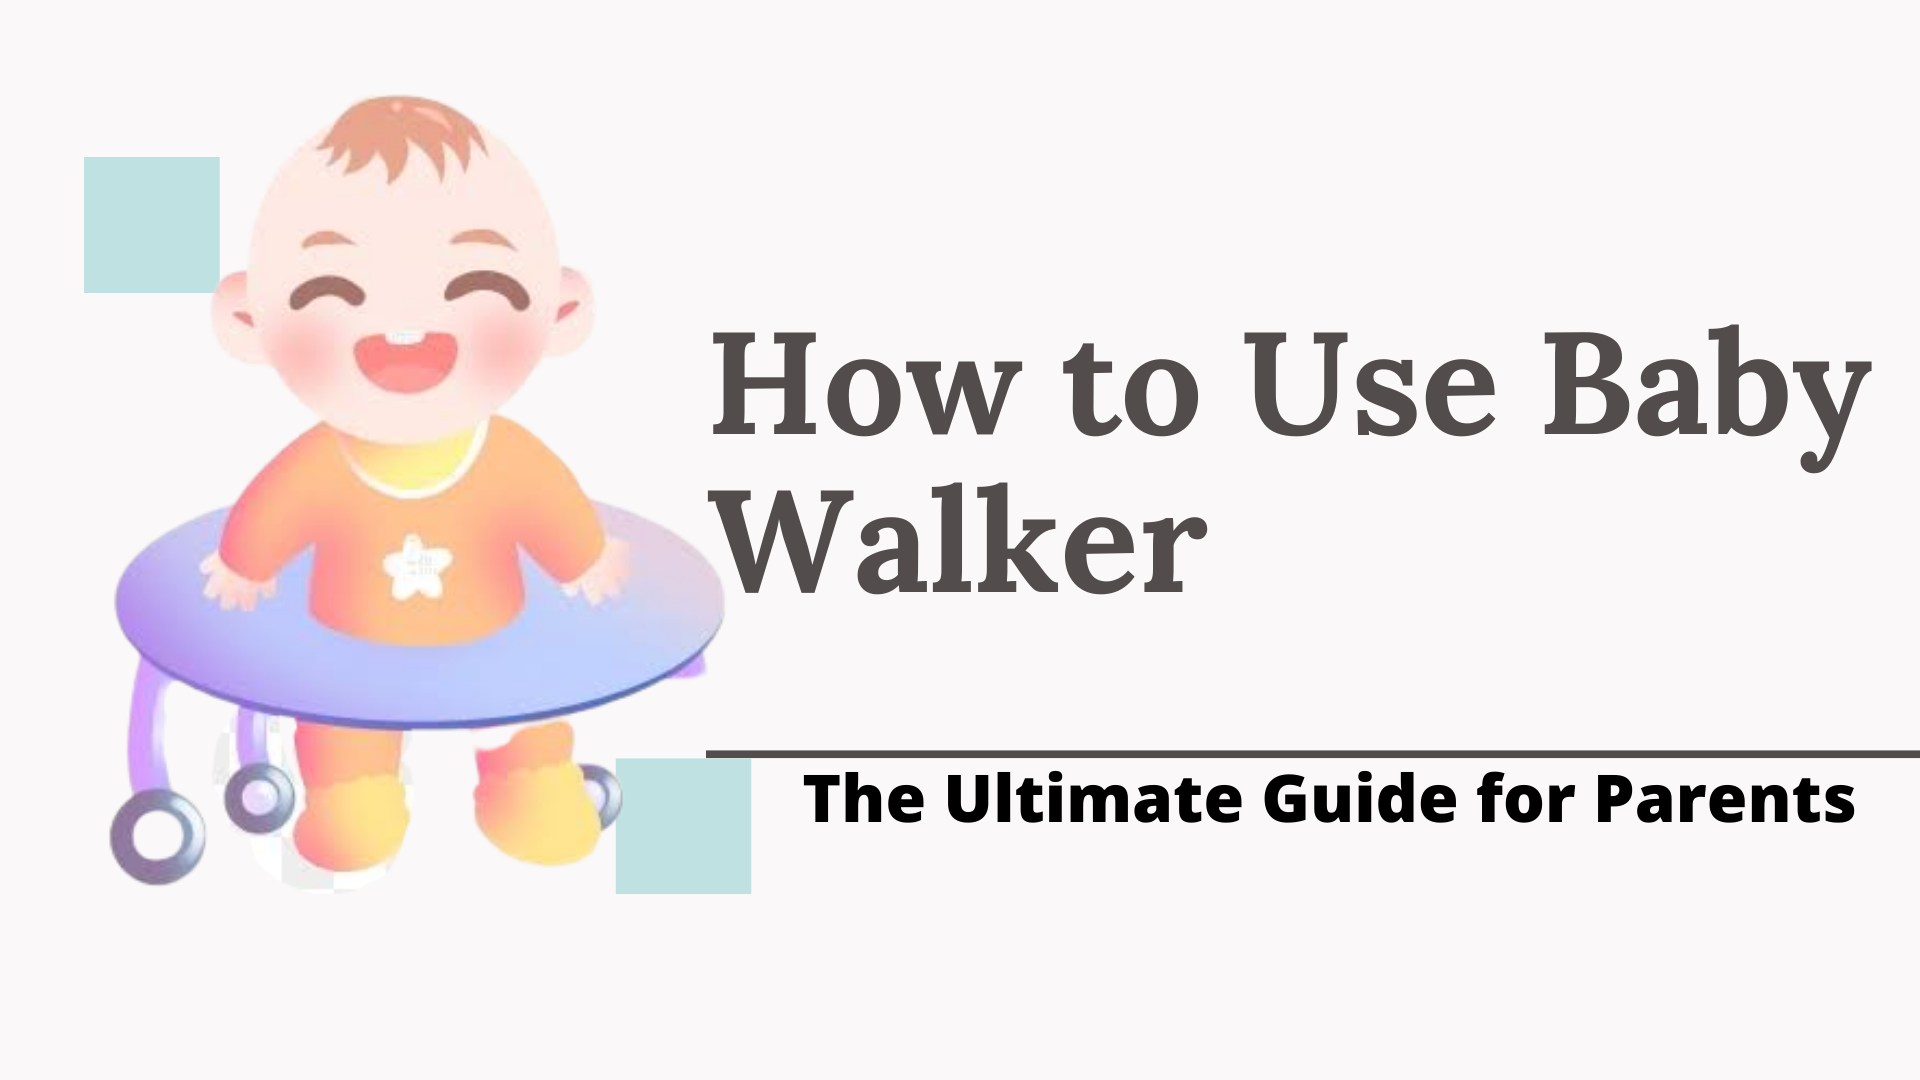 How to use baby walker